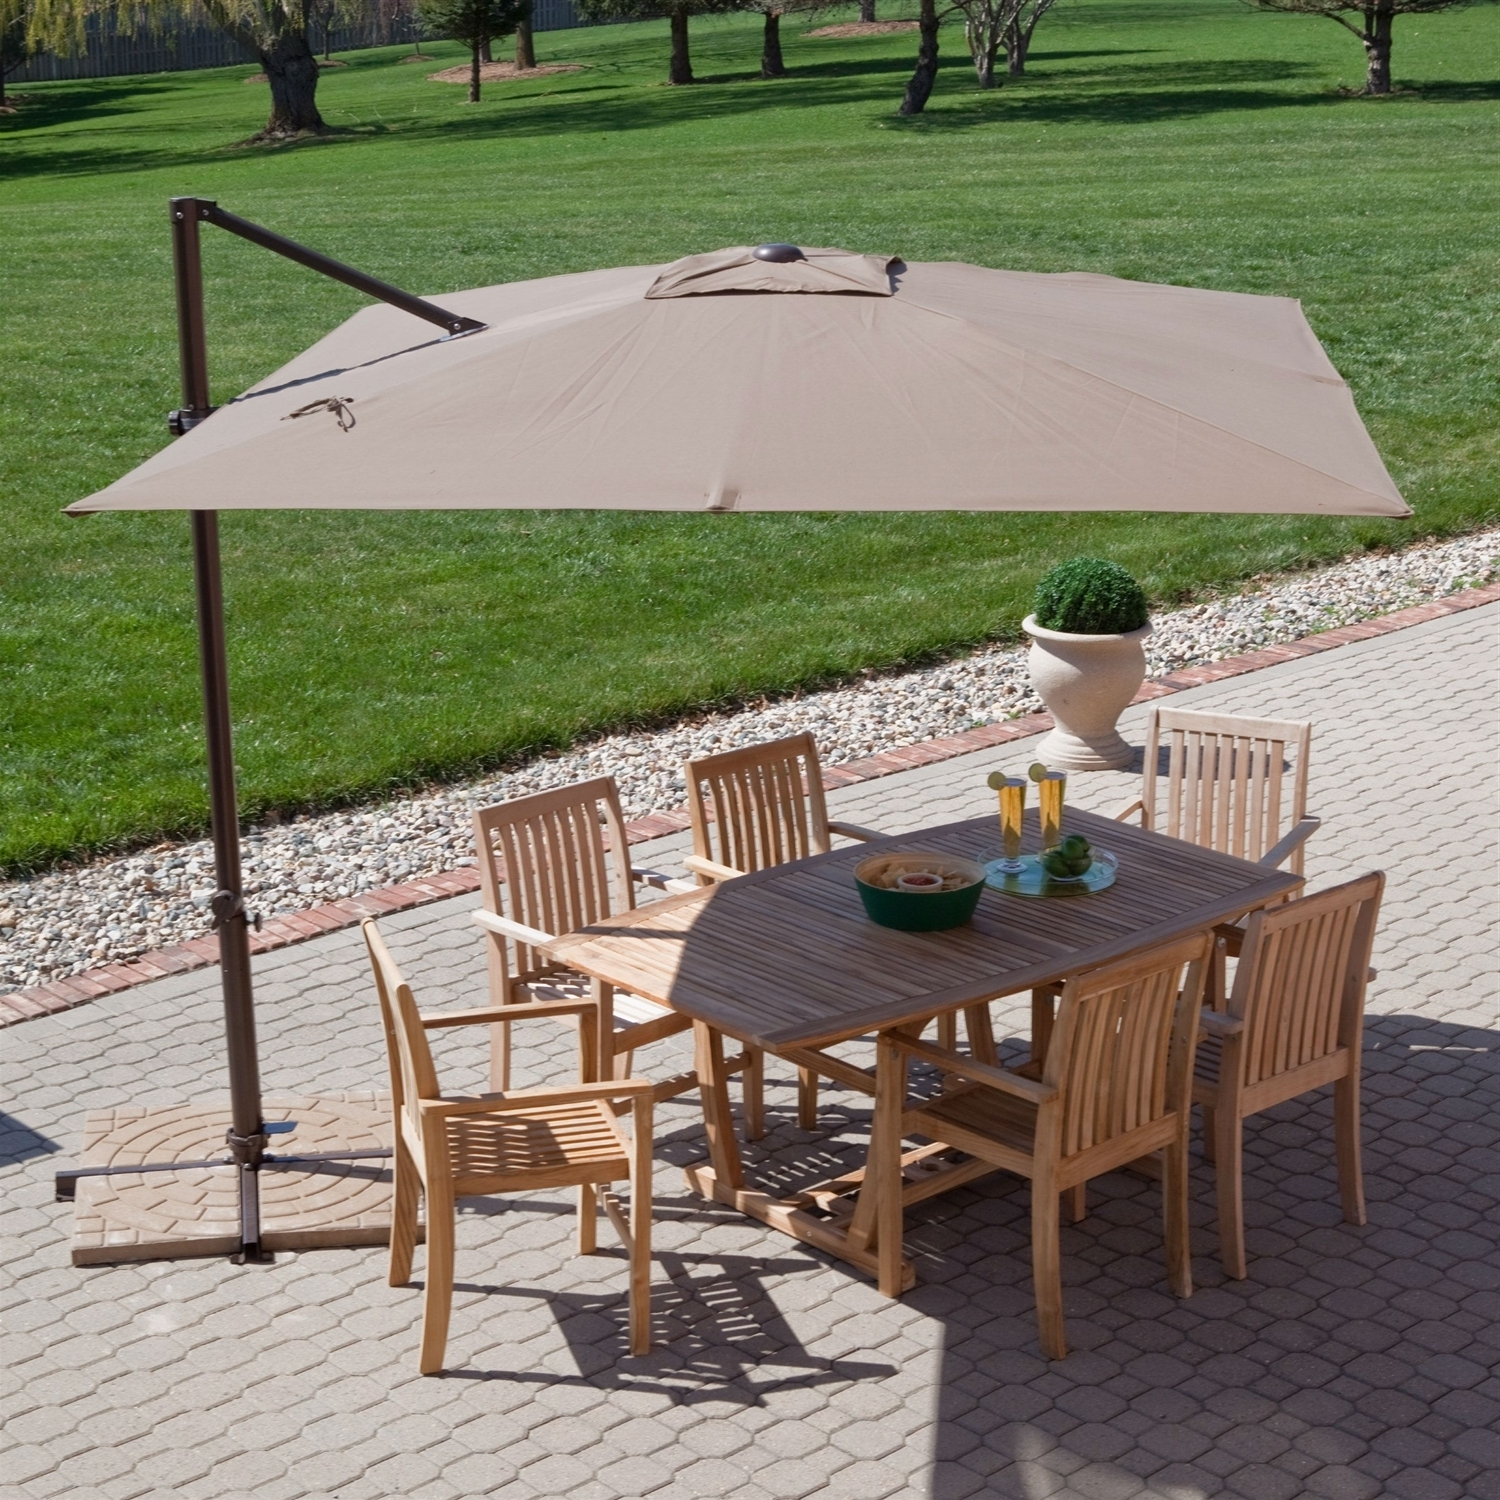 Outdoor Patio Umbrellas Pertaining To 2019 A Guide To Buying Offset Patio Umbrella – Blogbeen (Gallery 11 of 20)